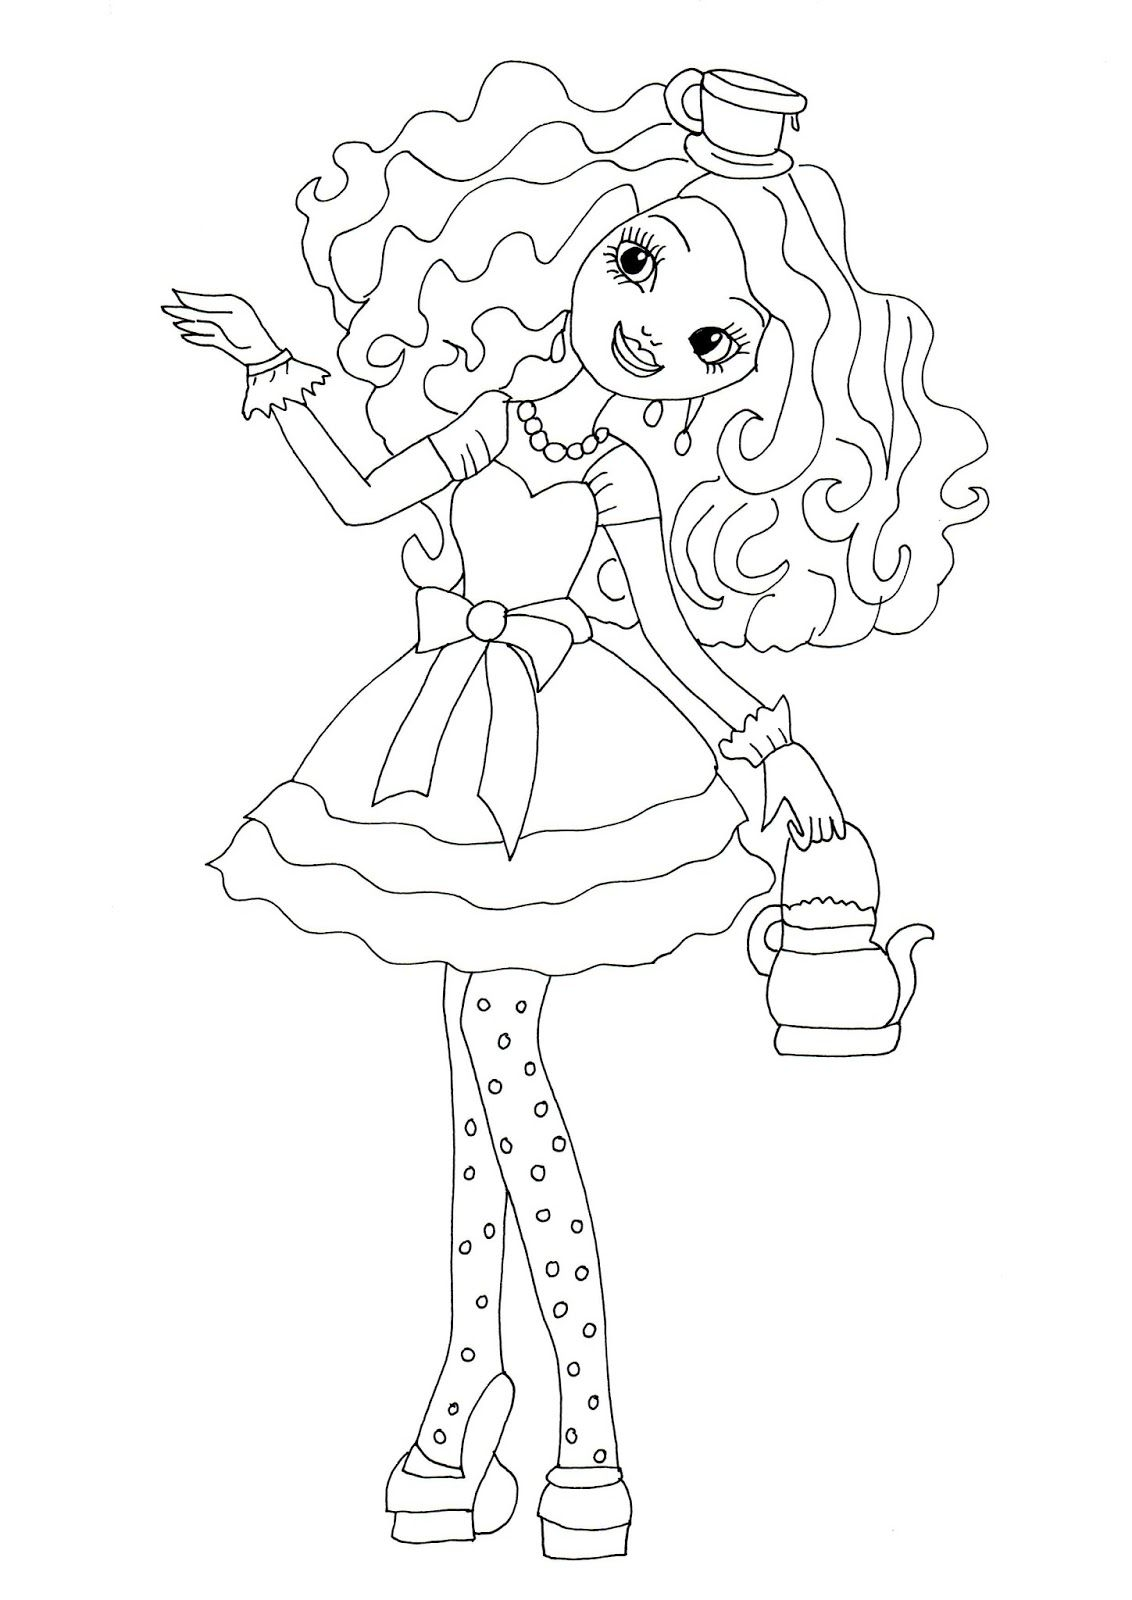 Printable coloring pages ever after high - Free Printable Ever After High Coloring Pages Madeline Hatter Ever After High Coloring Page